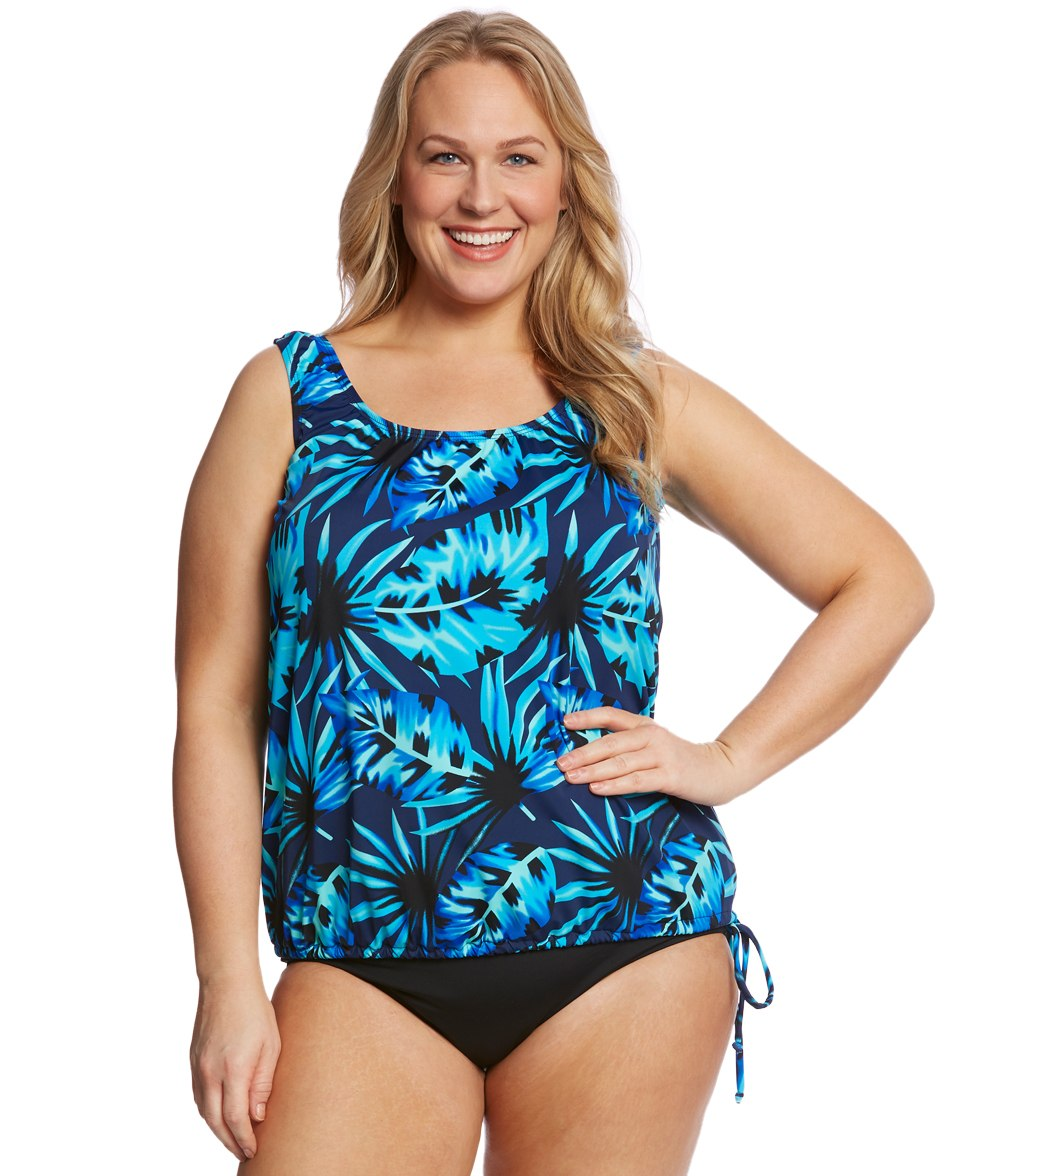 a7908d162022a ... Topanga Plus Size Deco Royale Mastectomy Wear Your Own Bra Tankini Top.  Play Video. MODEL MEASUREMENTS